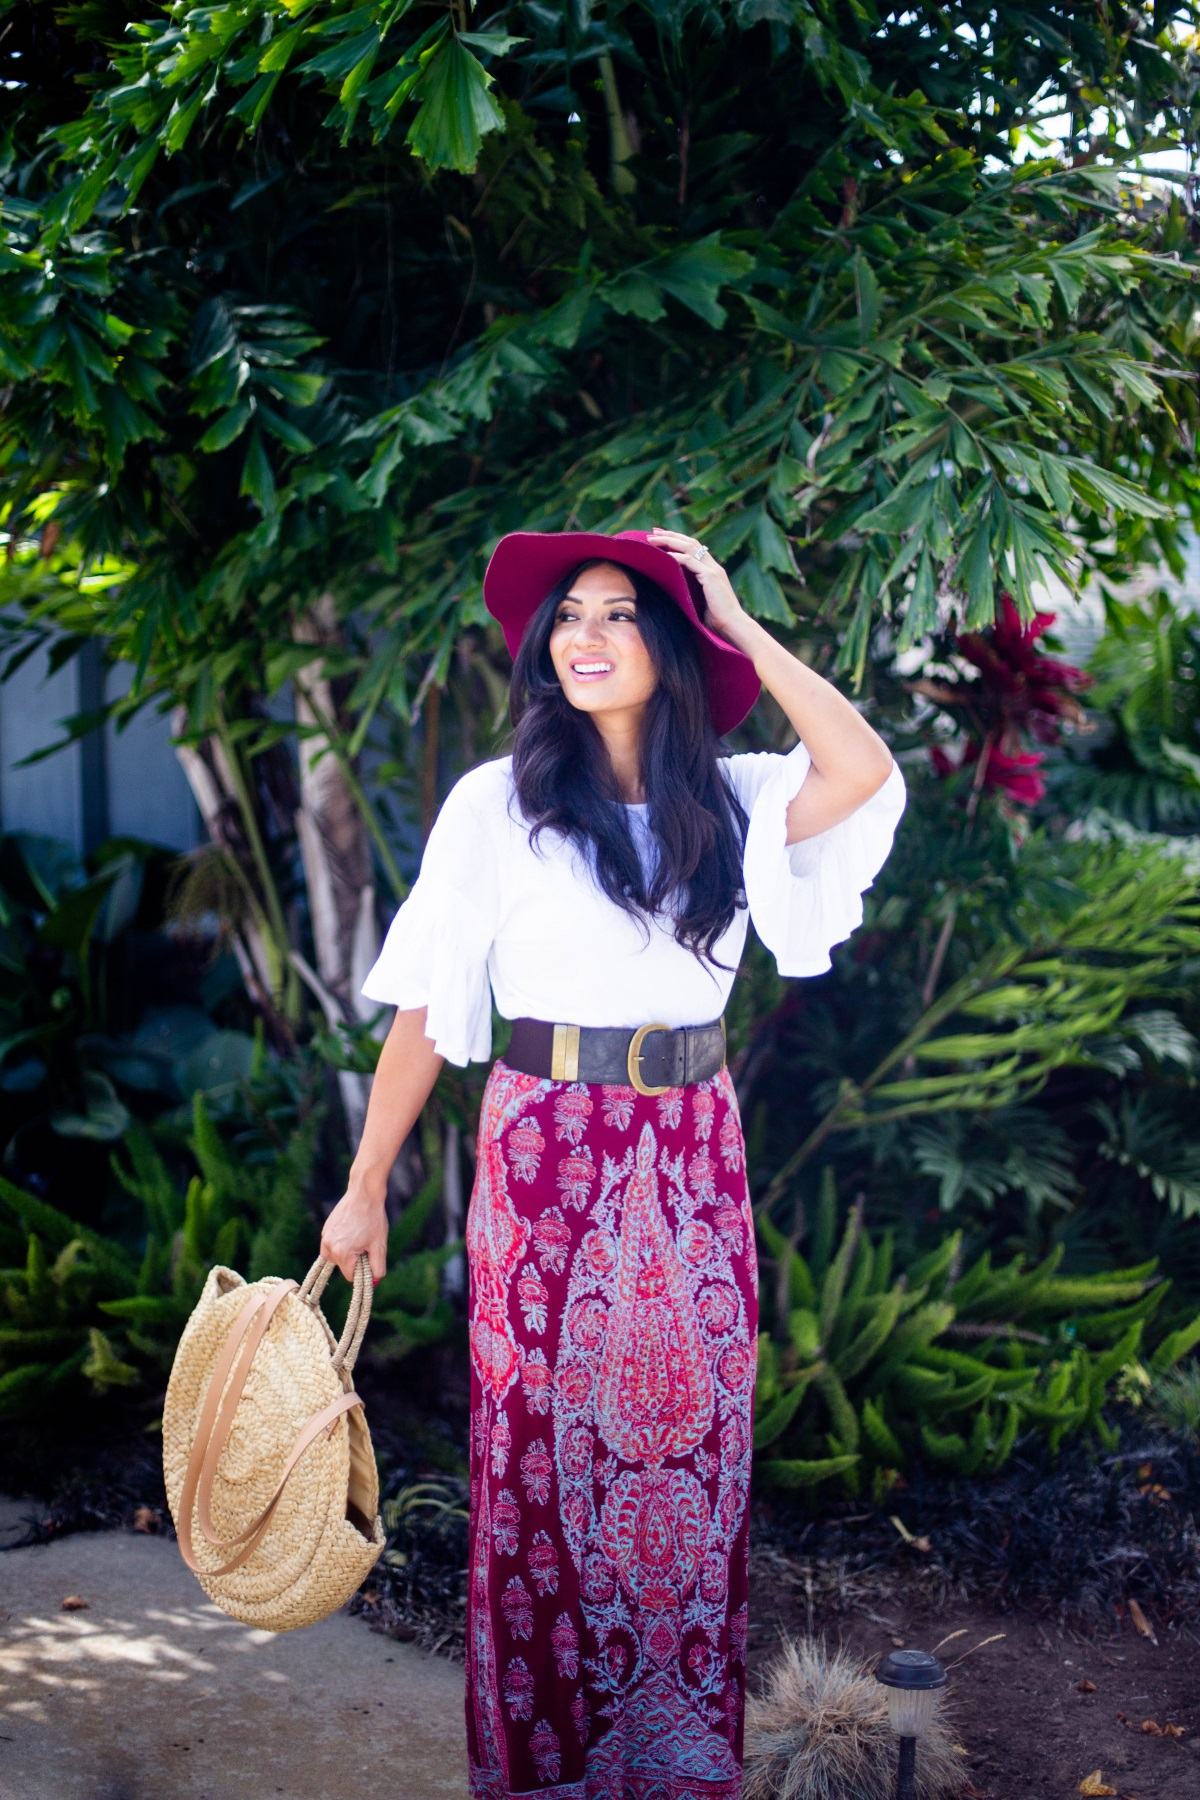 Elements of Boho Chic Style by Debbie Savage Orange County Fashion Blogger of To Thine Own Style Be True